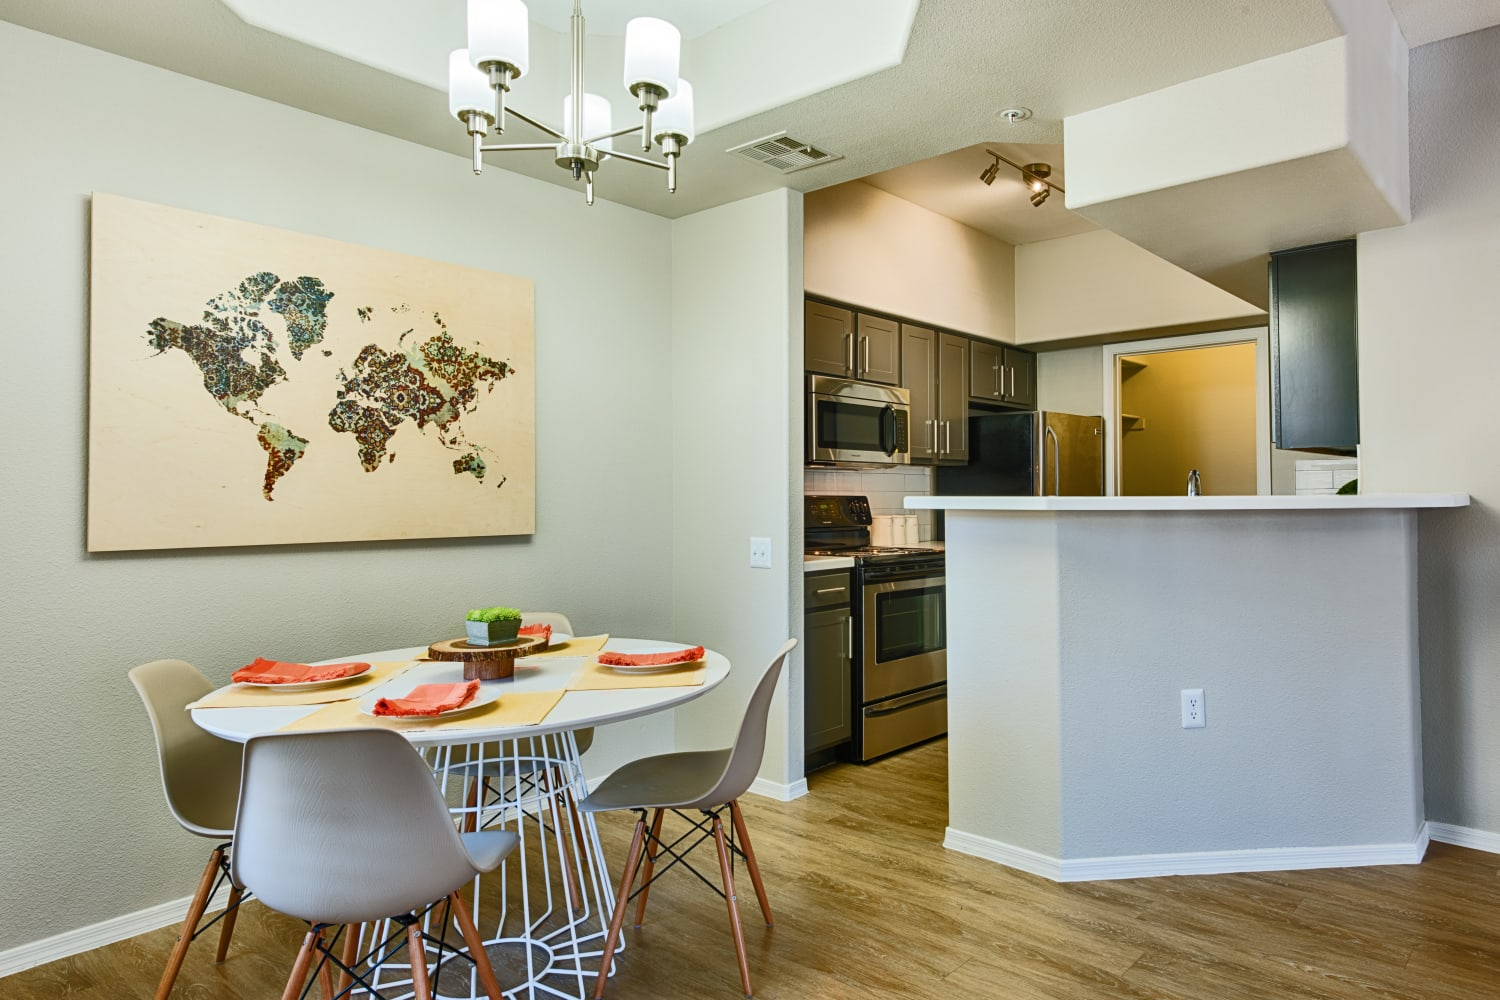 Room for entertaining at Sonoran Vista Apartments in Scottsdale, Arizona